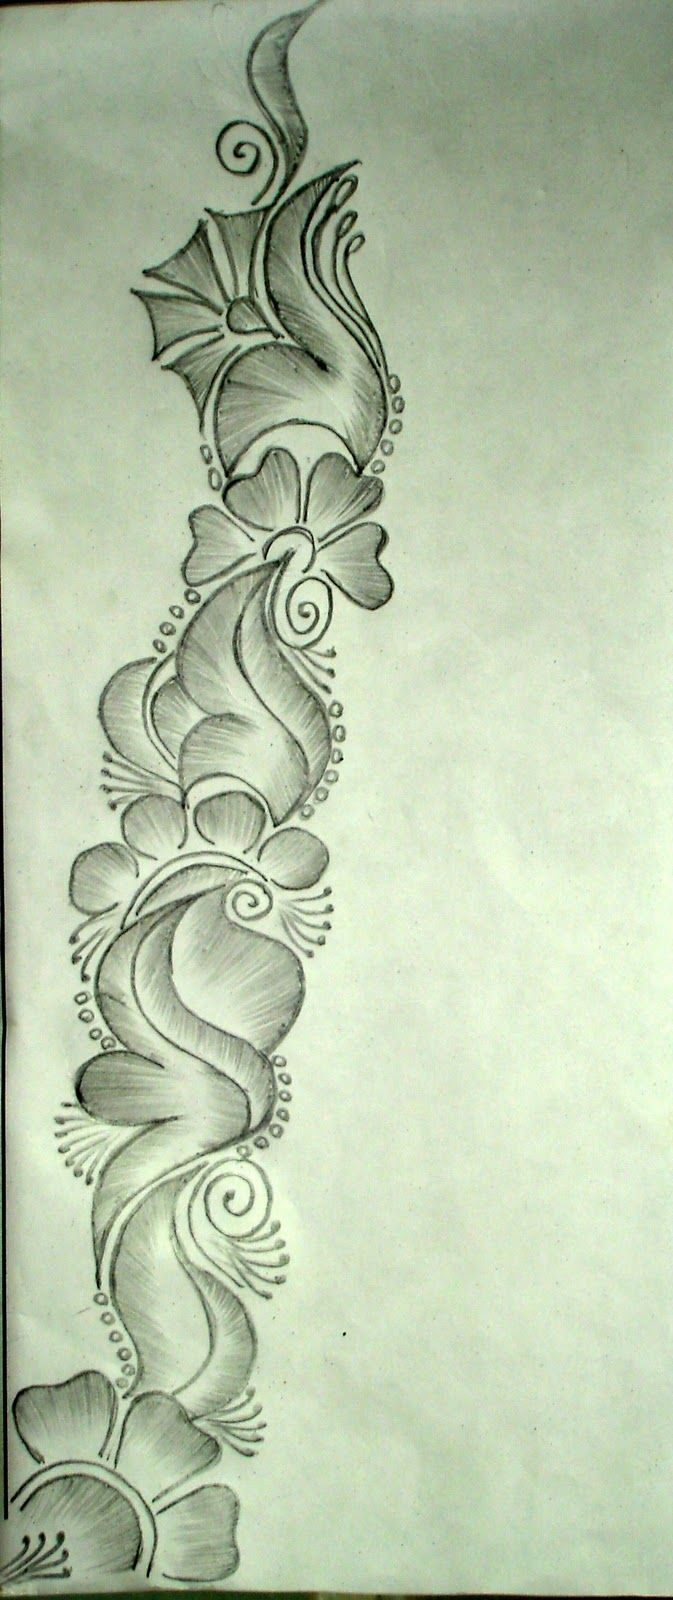 How to Learn Mehndi Design | How to Draw | Pinterest